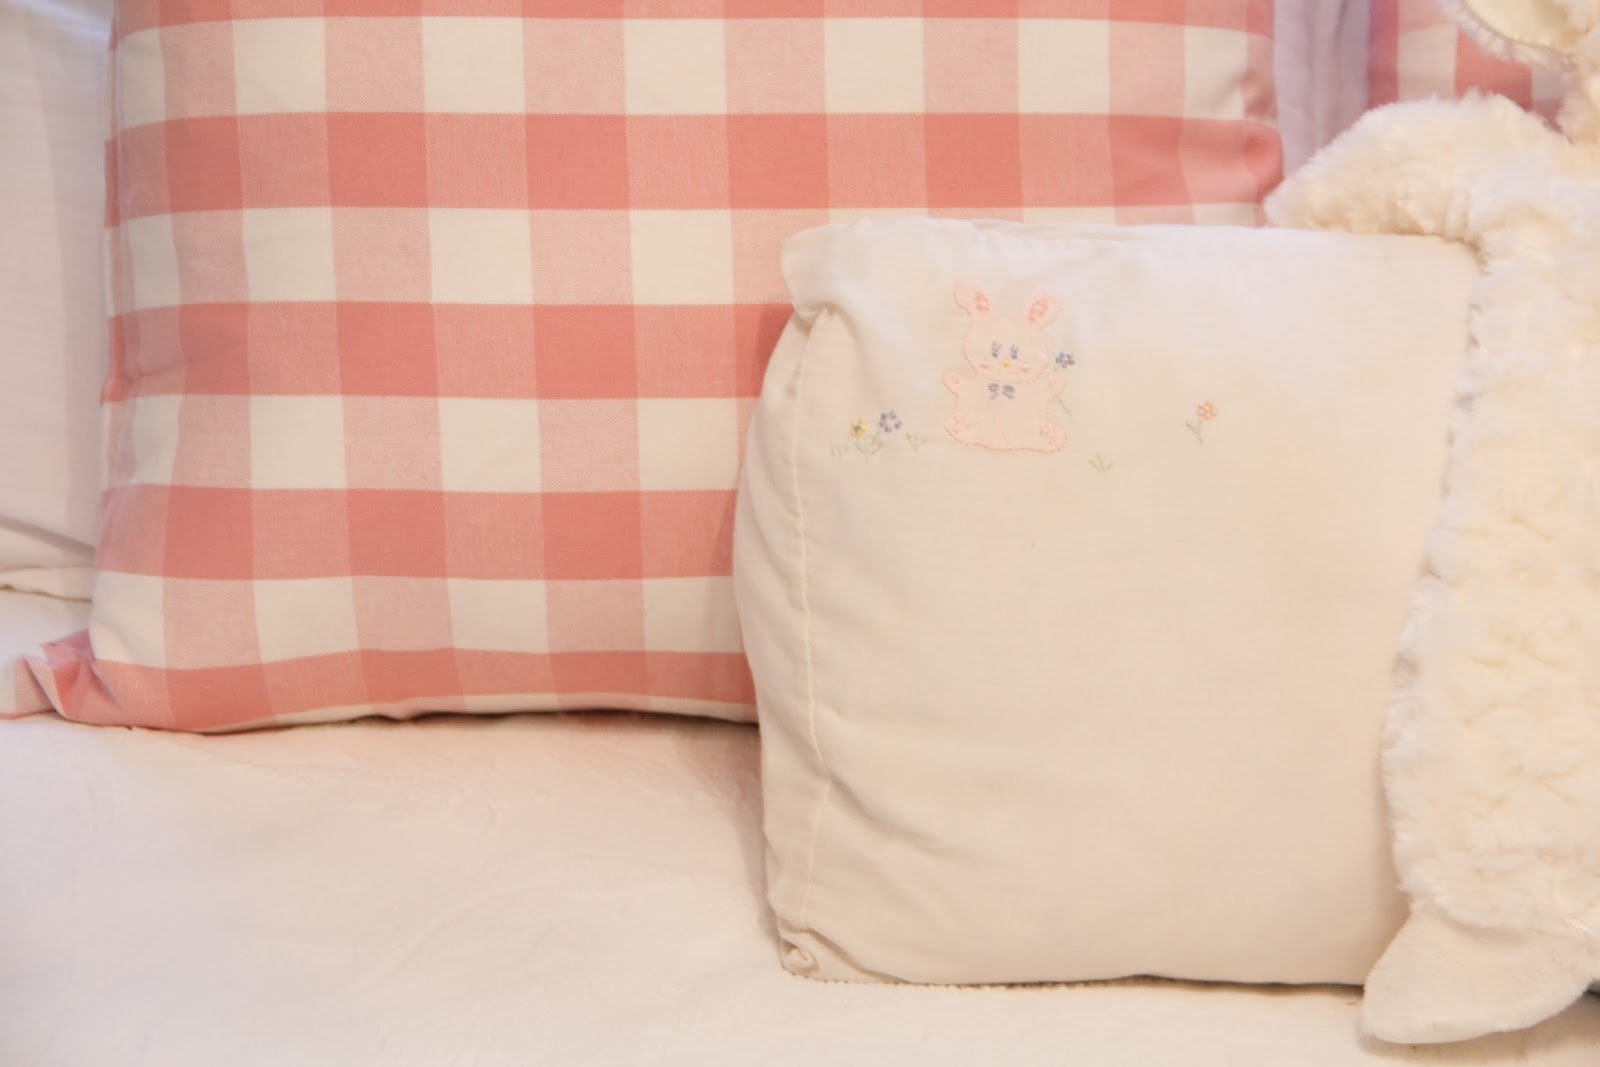 Baby cribs on craigslist - Pillows From Ikea Bunny Pillowcase Via If Anyone Knows I Will Pay A Finders Fee I Have The Matching Baby Blanket That I Still Sleep With